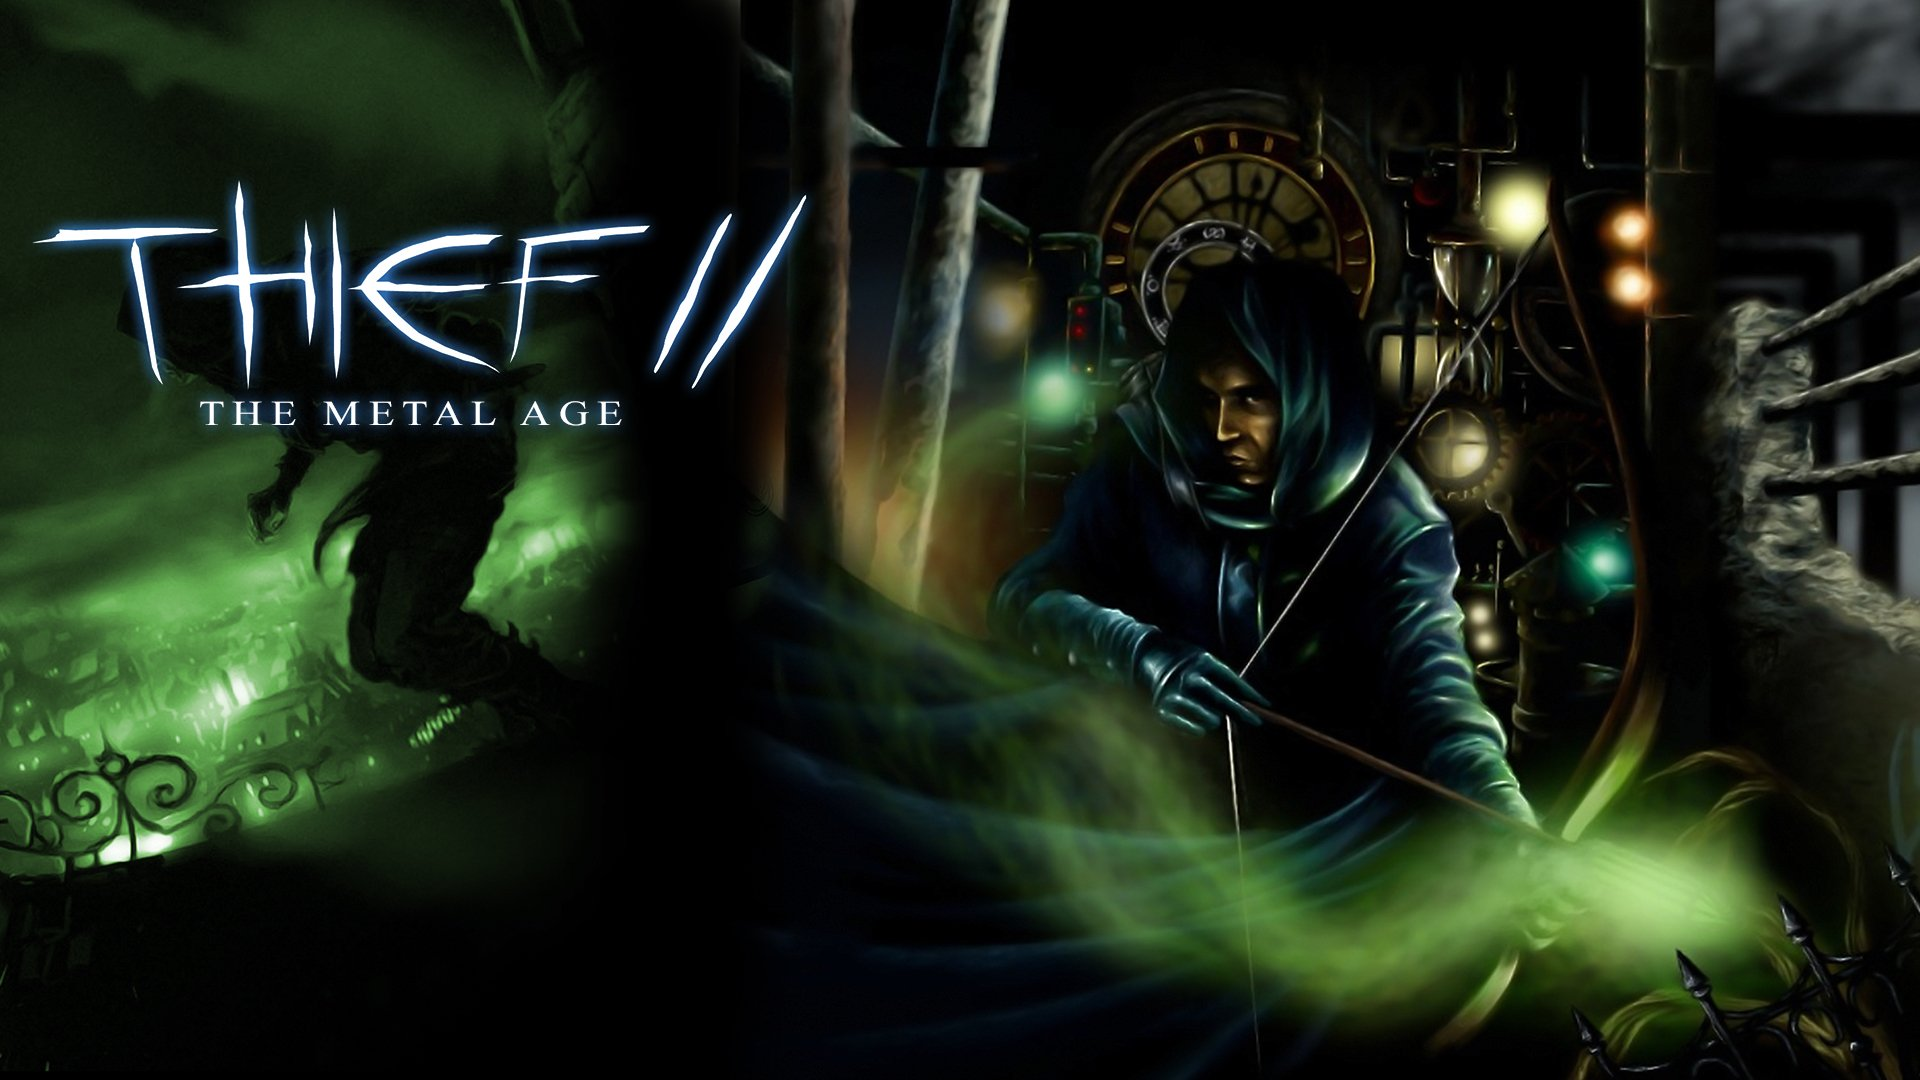 Thief II The Metal Age HD Wallpaper Background Image 1920x1080